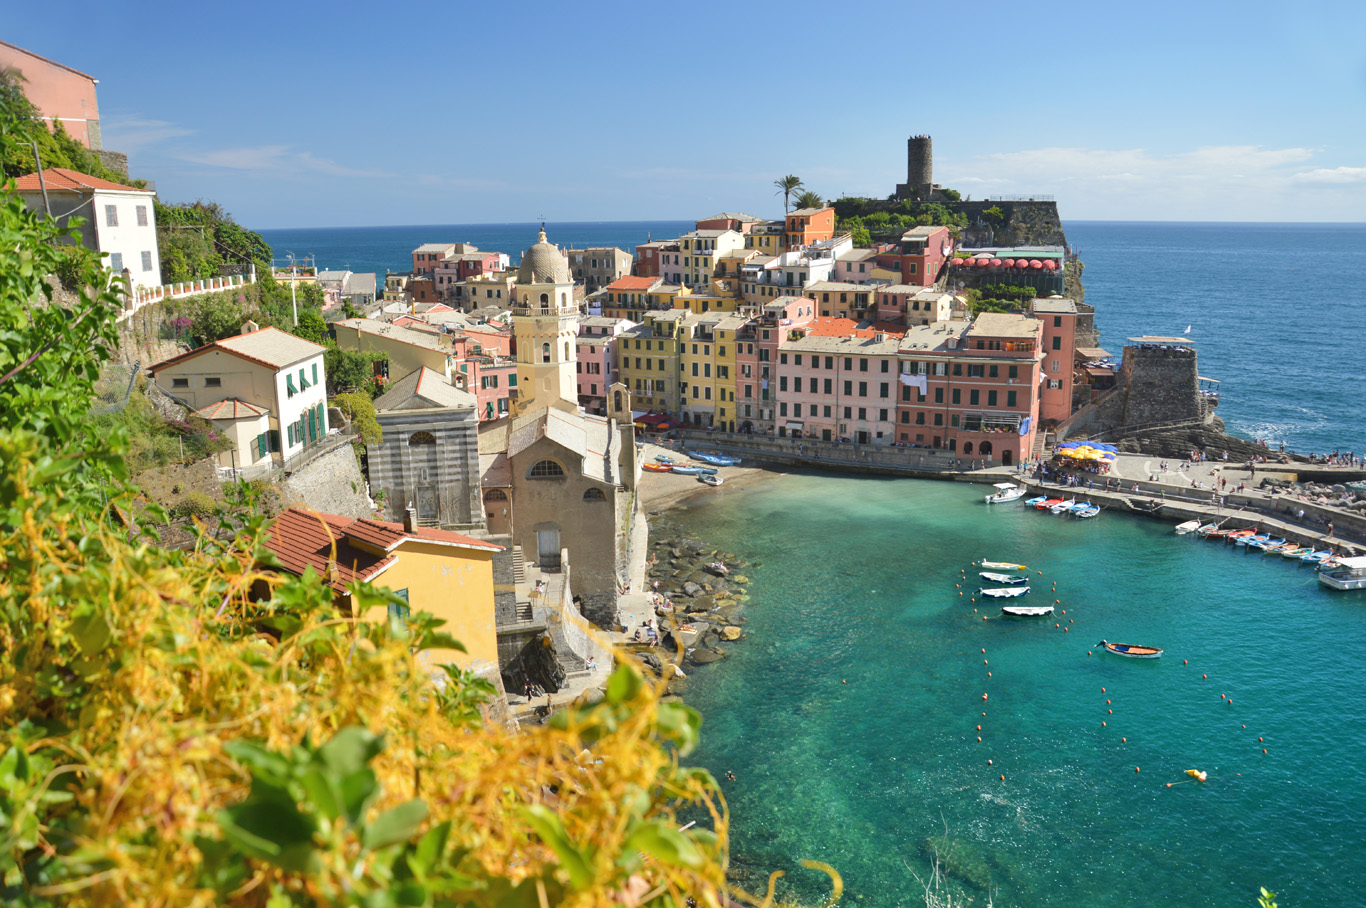 Vernazza seen from the trail